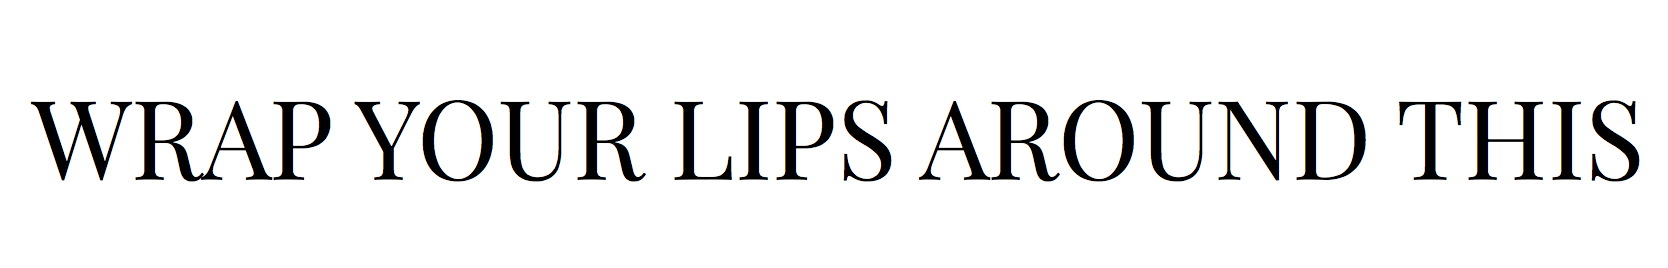 Wrap Your Lips Around This - Food & London Lifestyle Blog